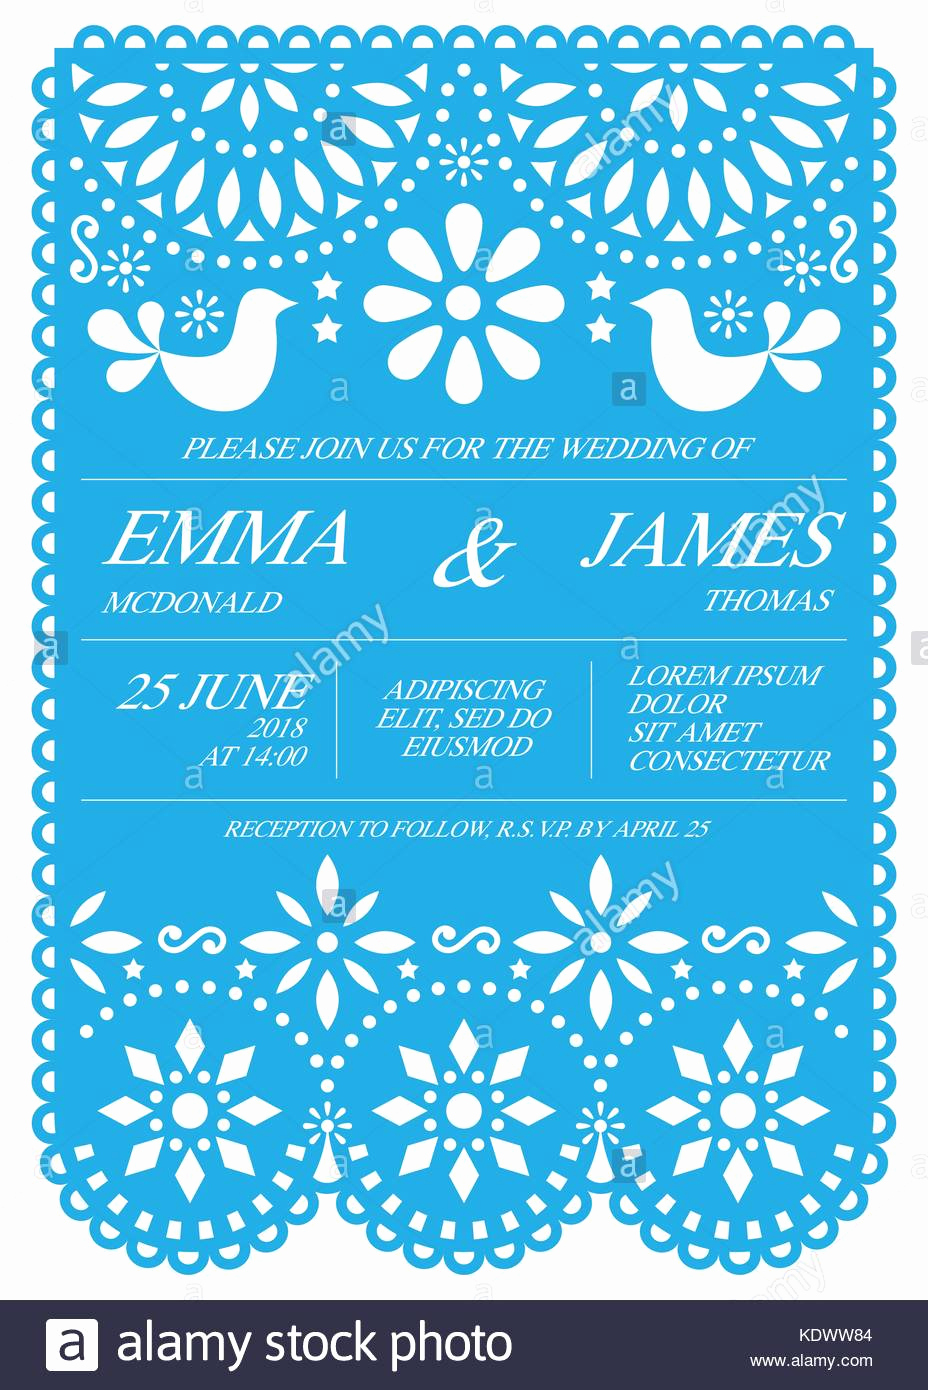 Papel Picado Invitation Template Luxury Picado Stock S & Picado Stock Alamy